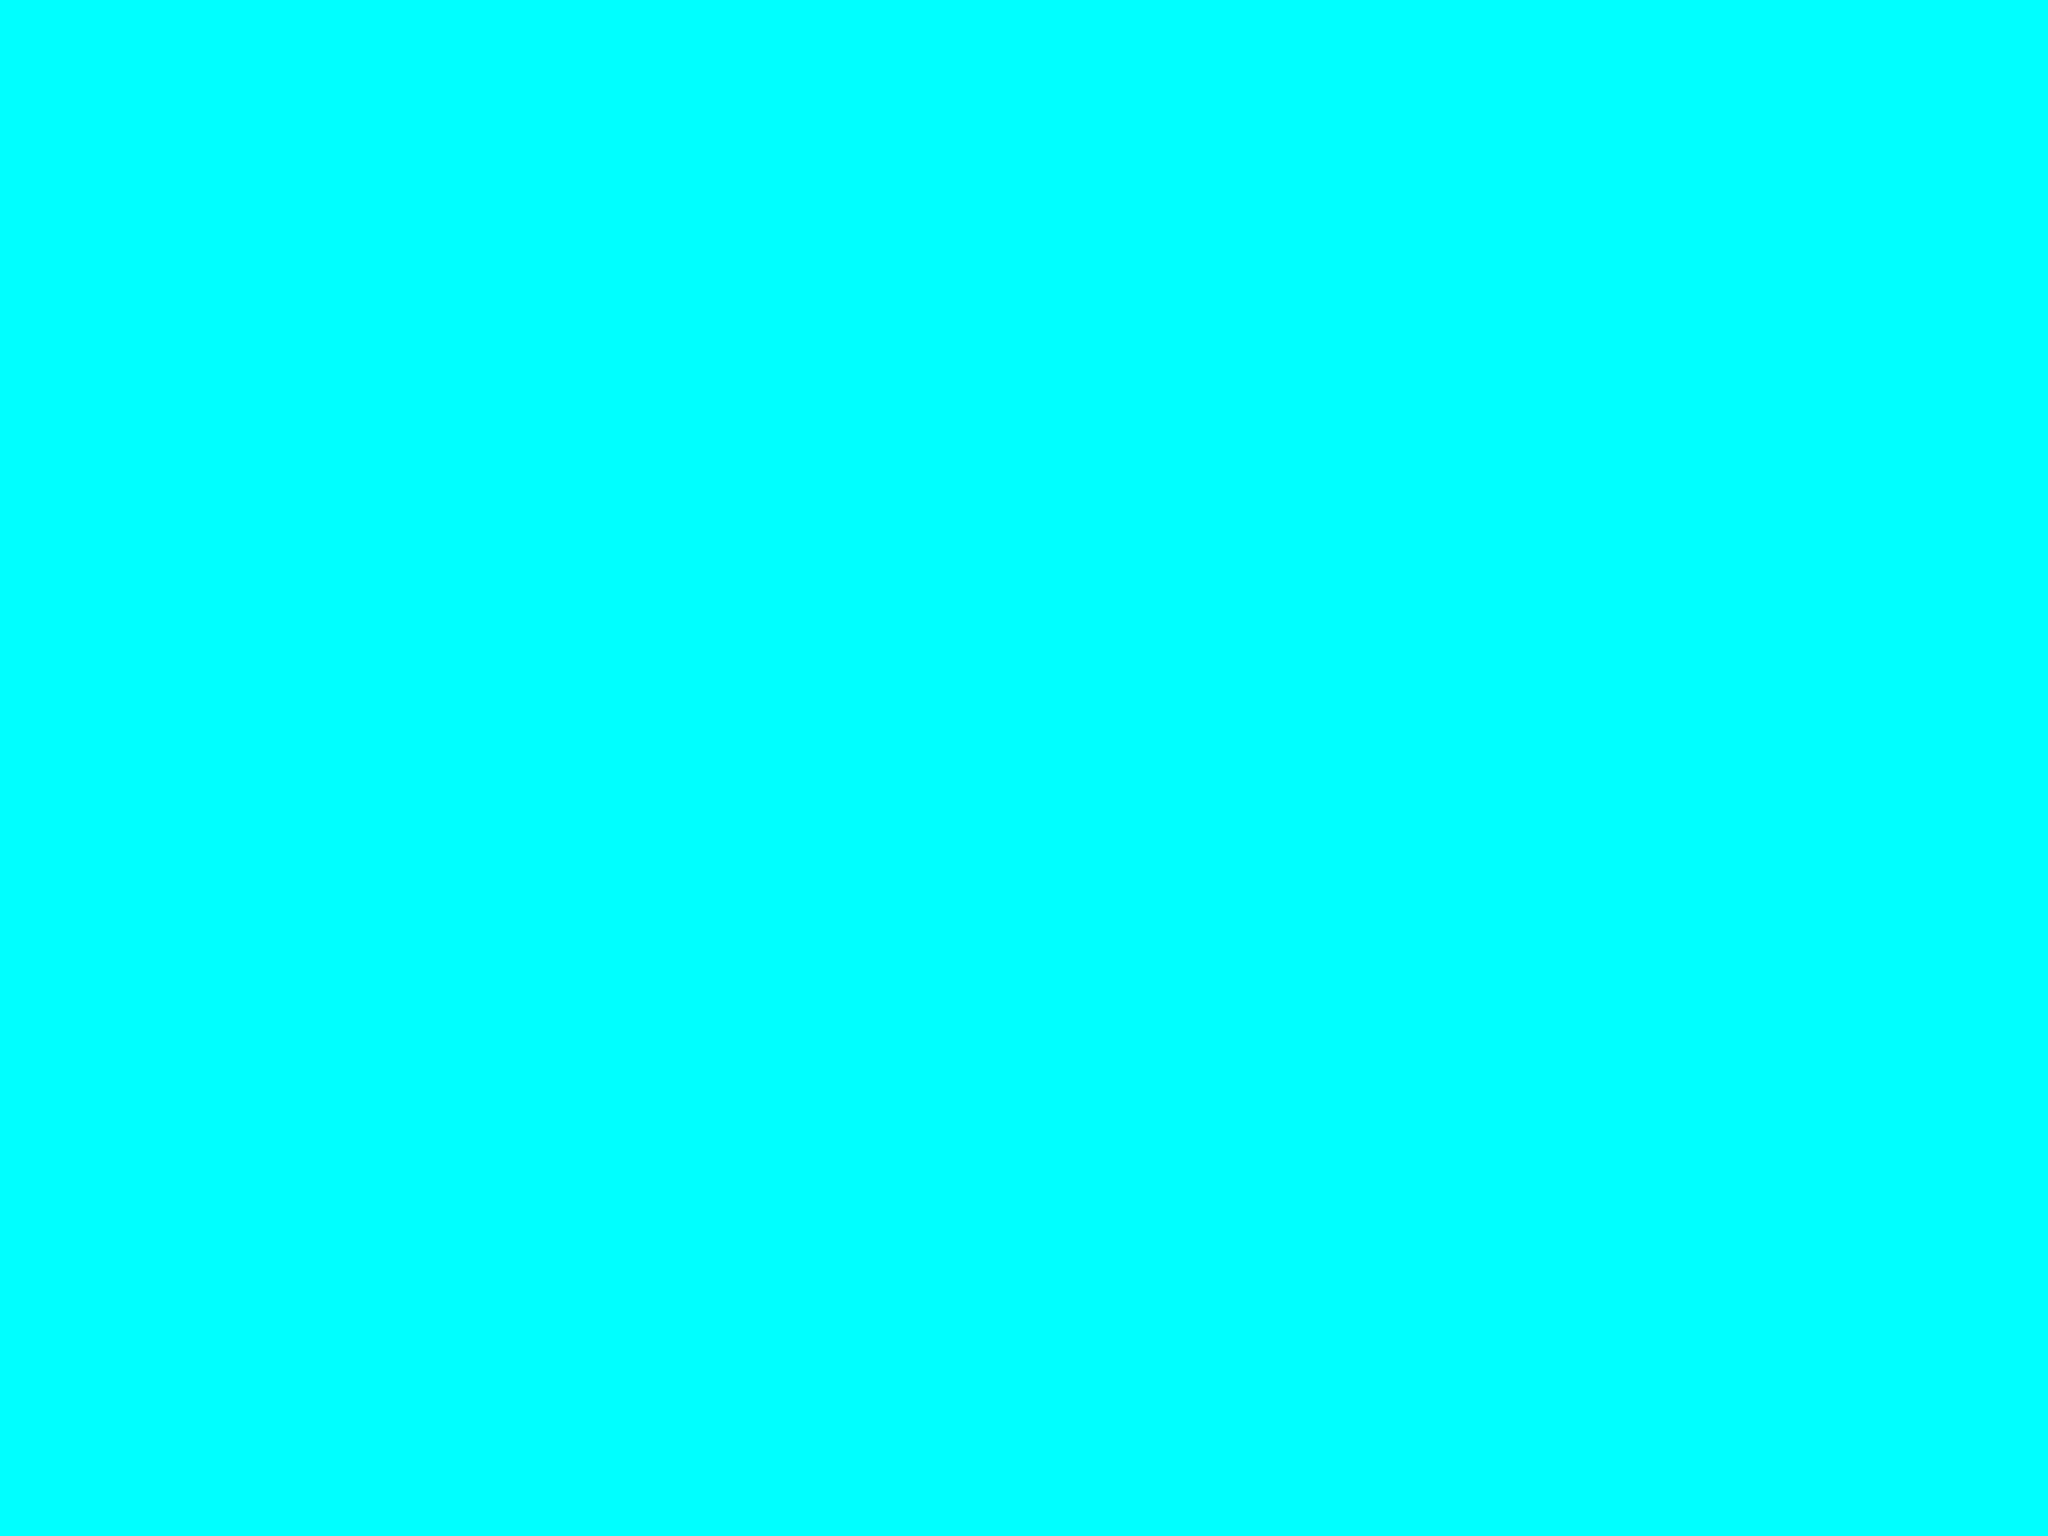 2048x1536 Electric Cyan Solid Color Background